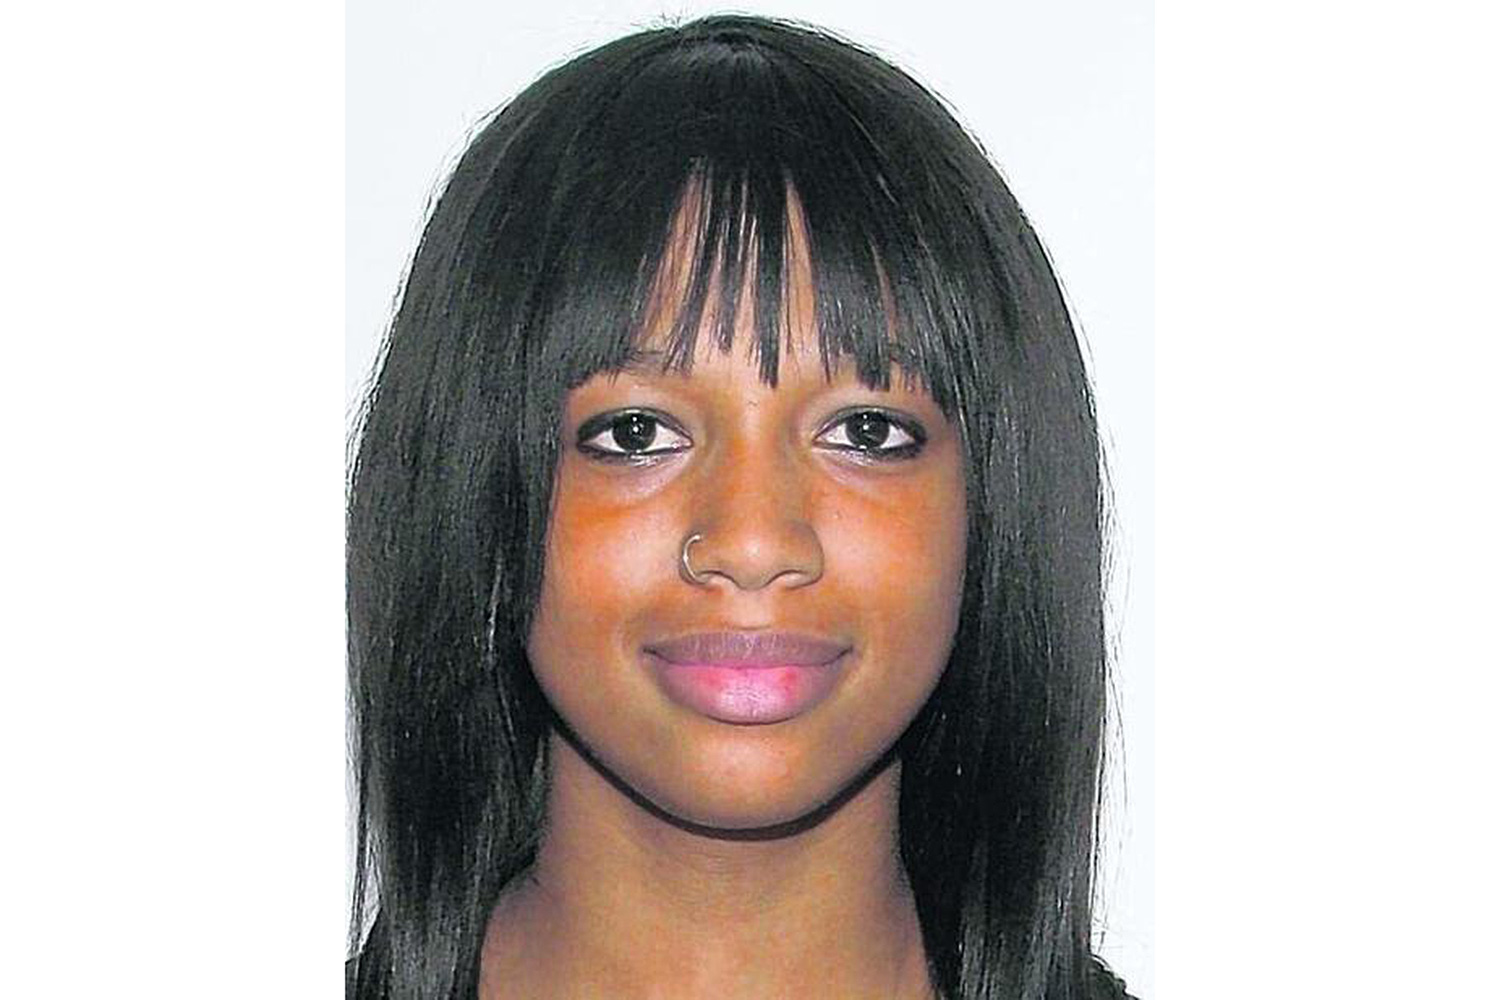 Remains of 17-Year-Old Virginia Girl Missing Since 2013 Have Been Found